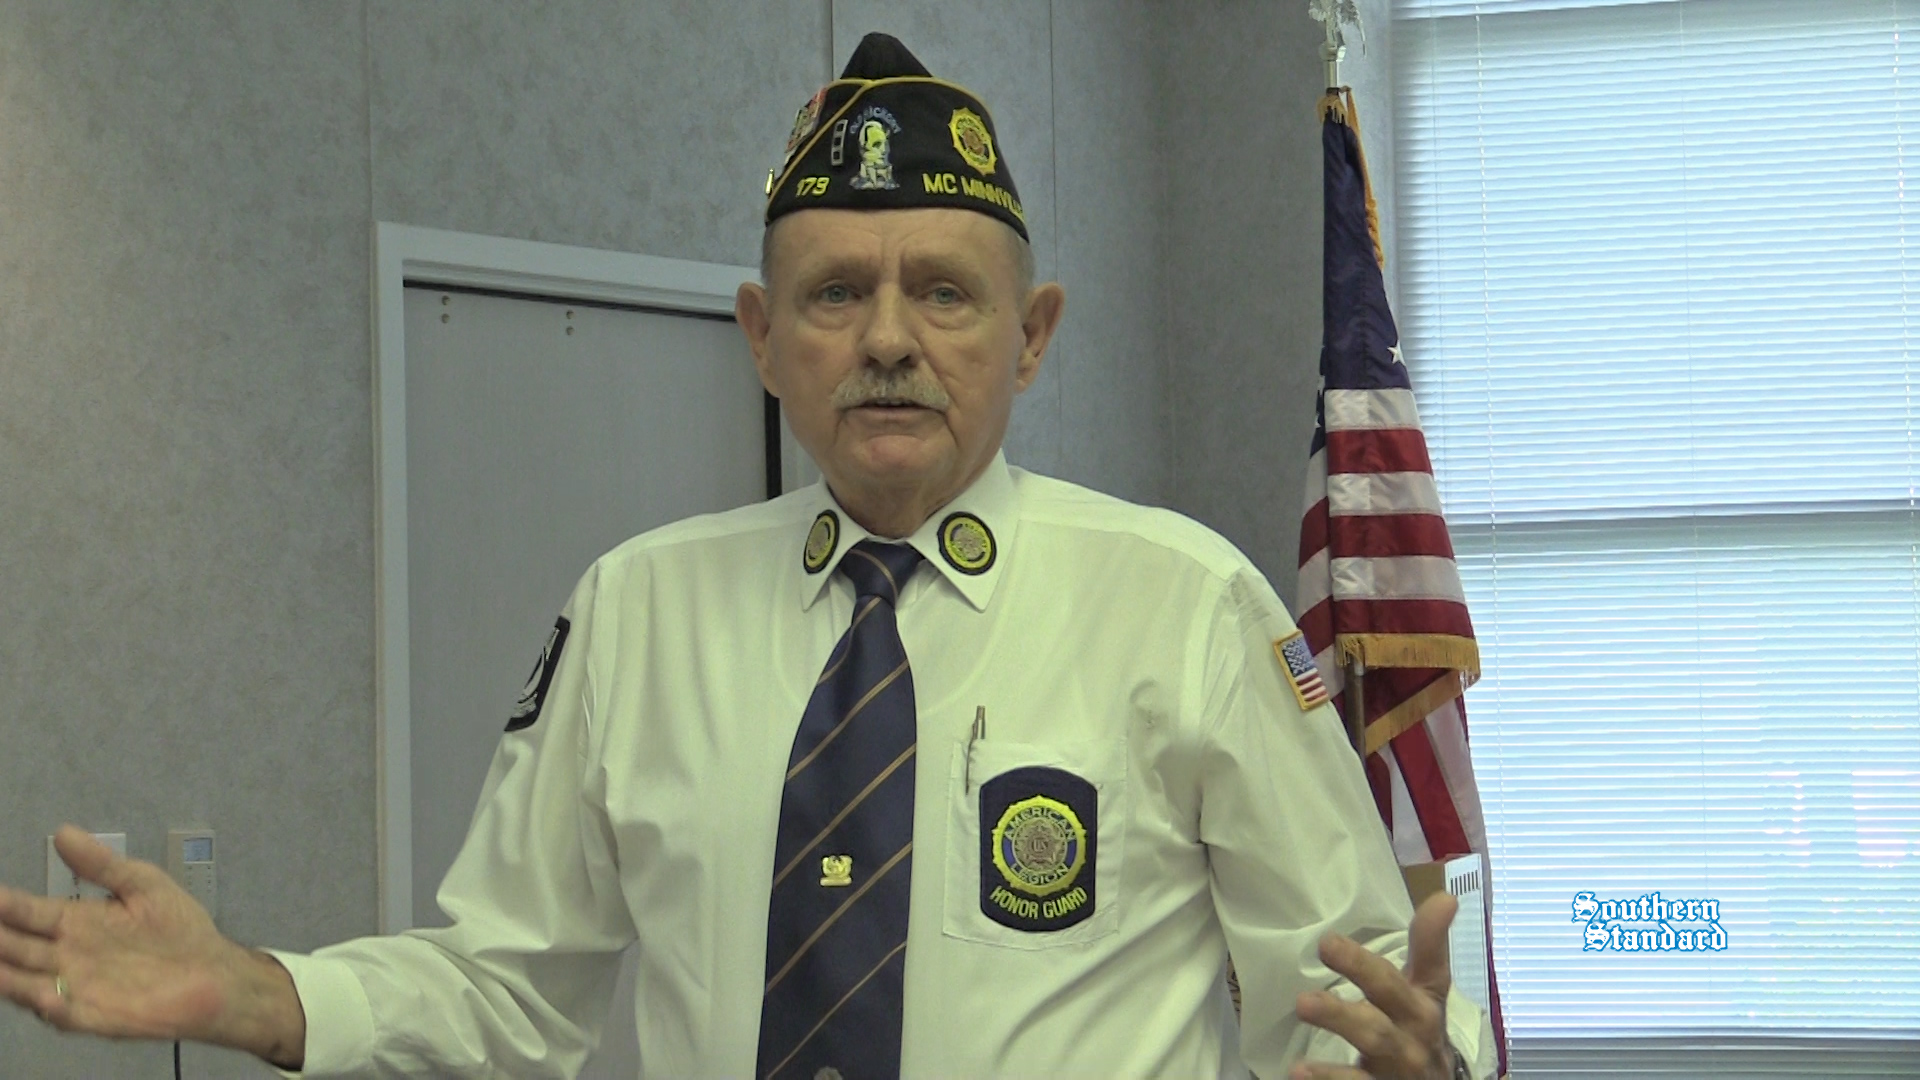 The history of the American Legion